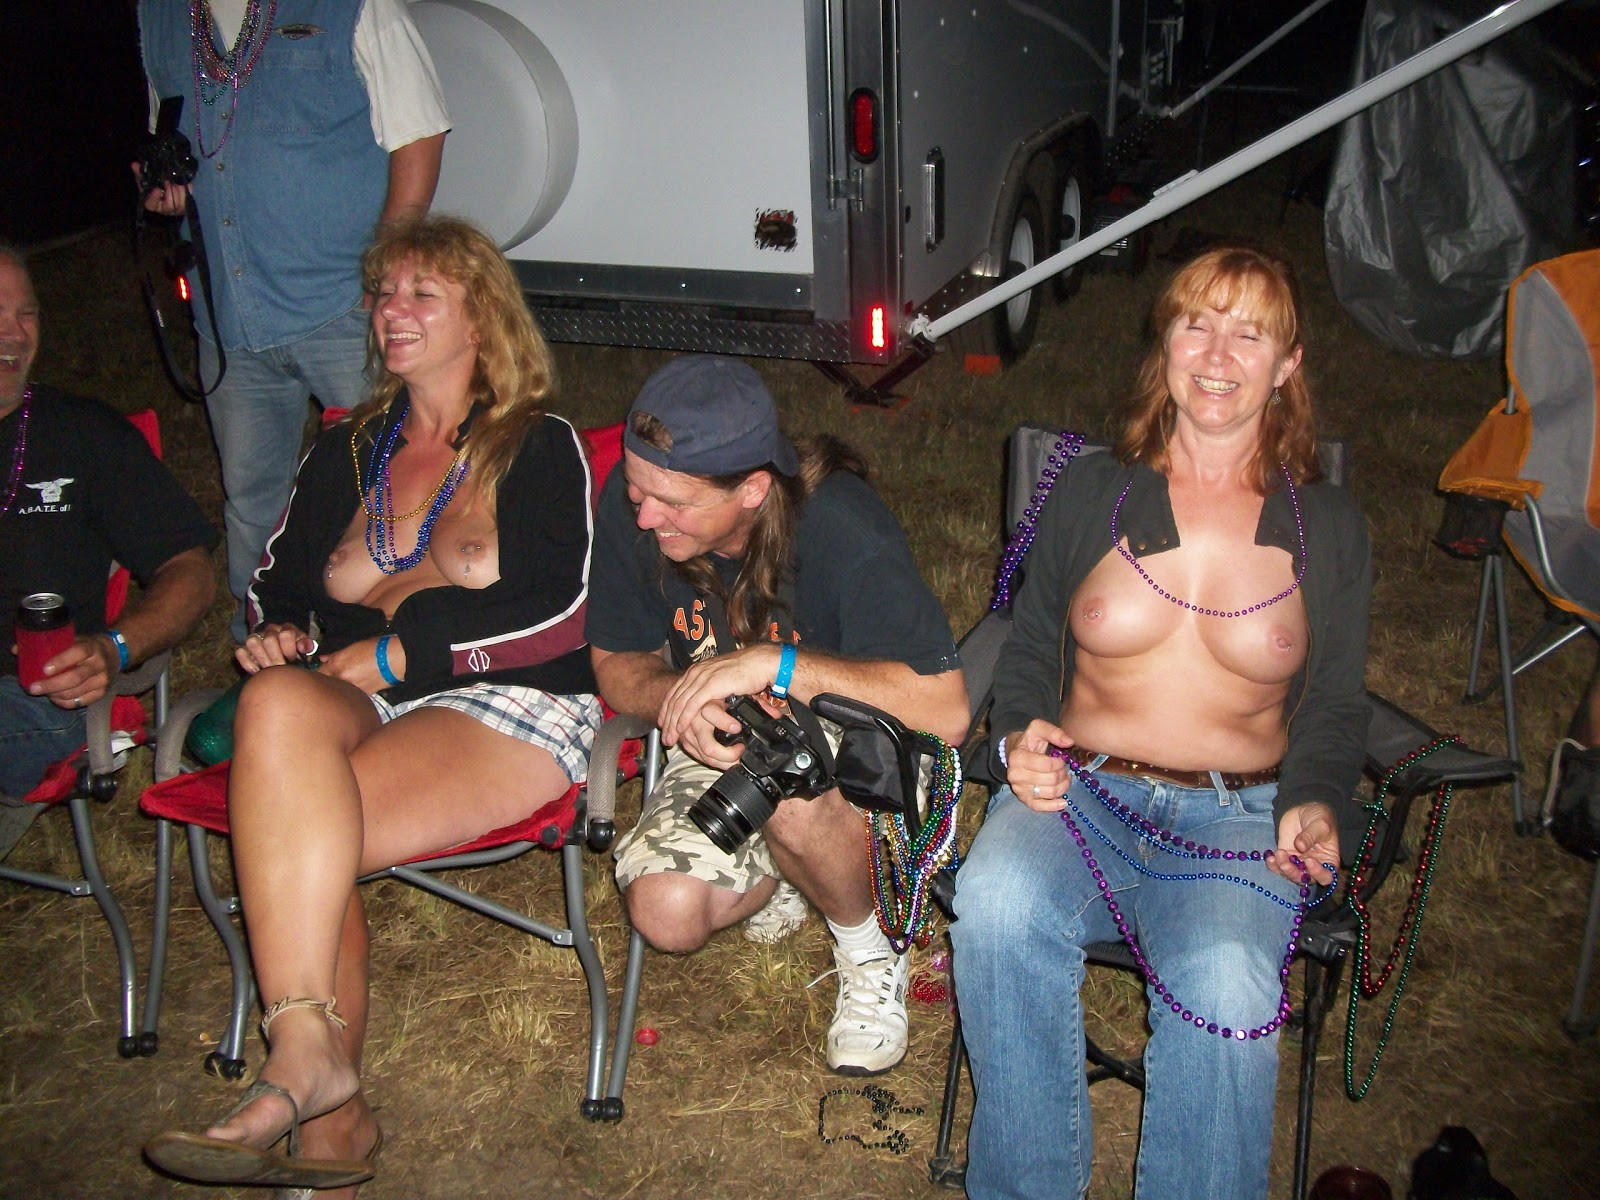 sturgis woman show their pussy